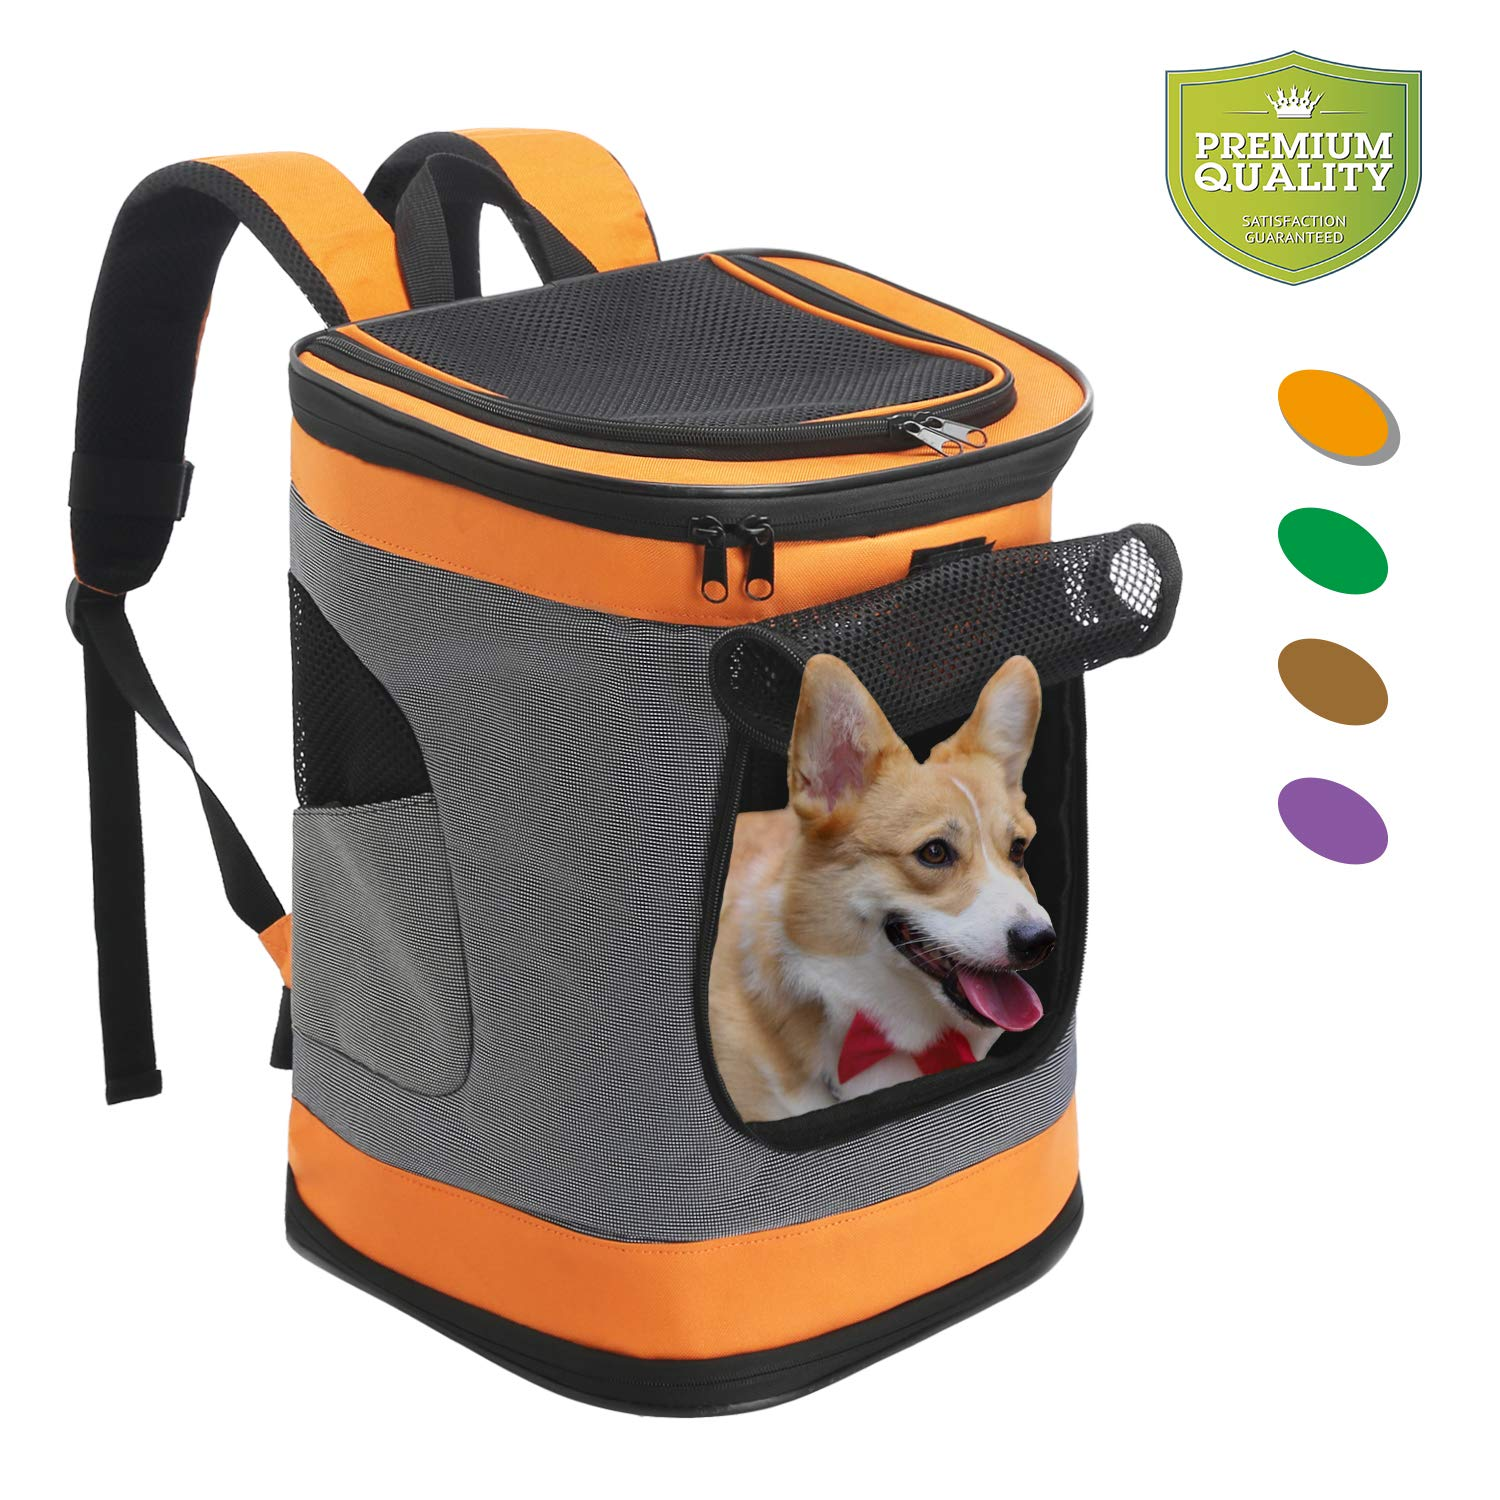 Pet Carrier Backpack for Small Medium Dogs Cats, Airline Approved Bag with Mesh Windows for Travel, Hiking, Outdoor up to 20LBS